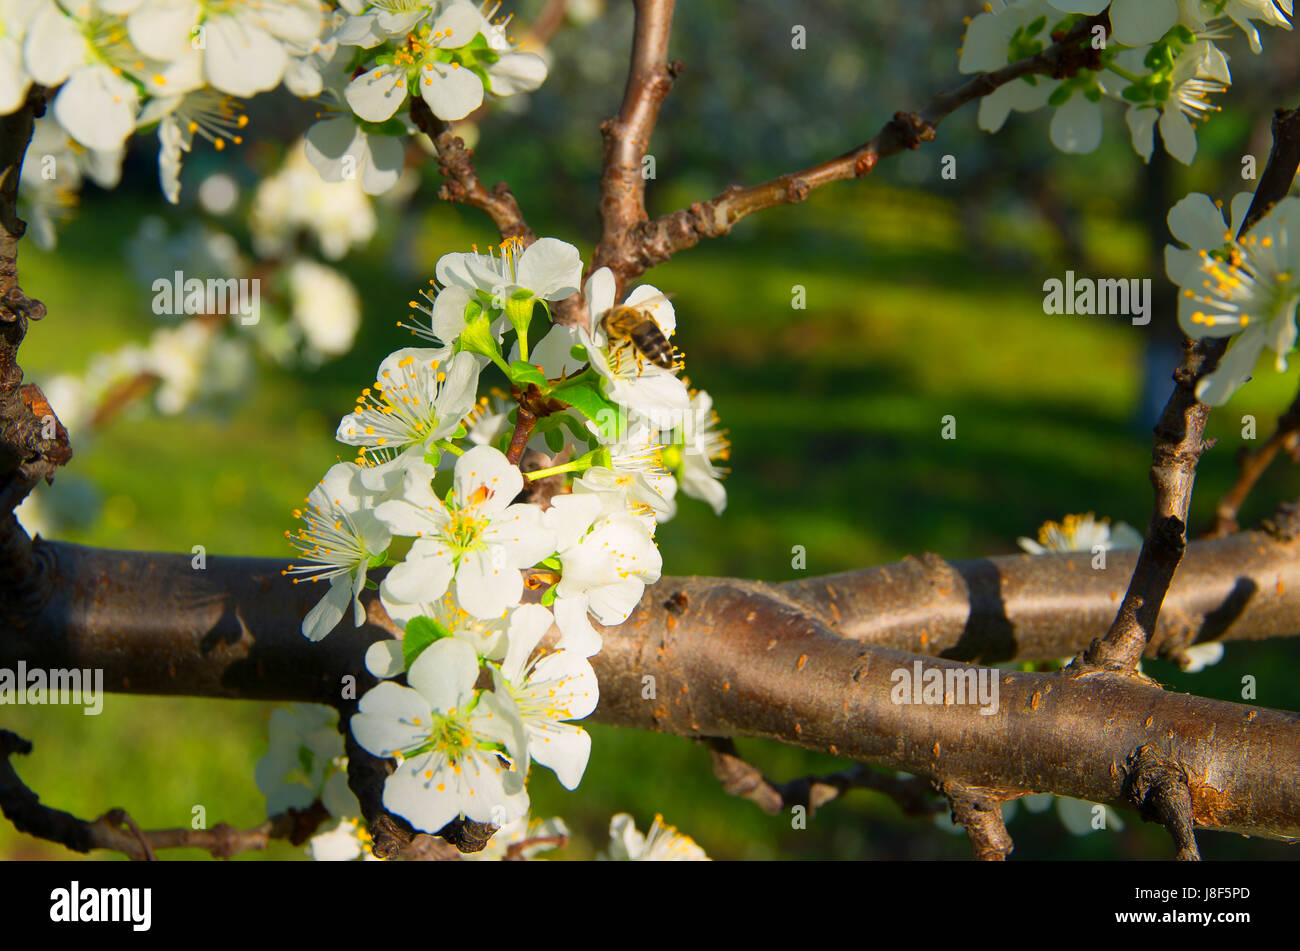 Pollination of flowering trees. Stock Photo